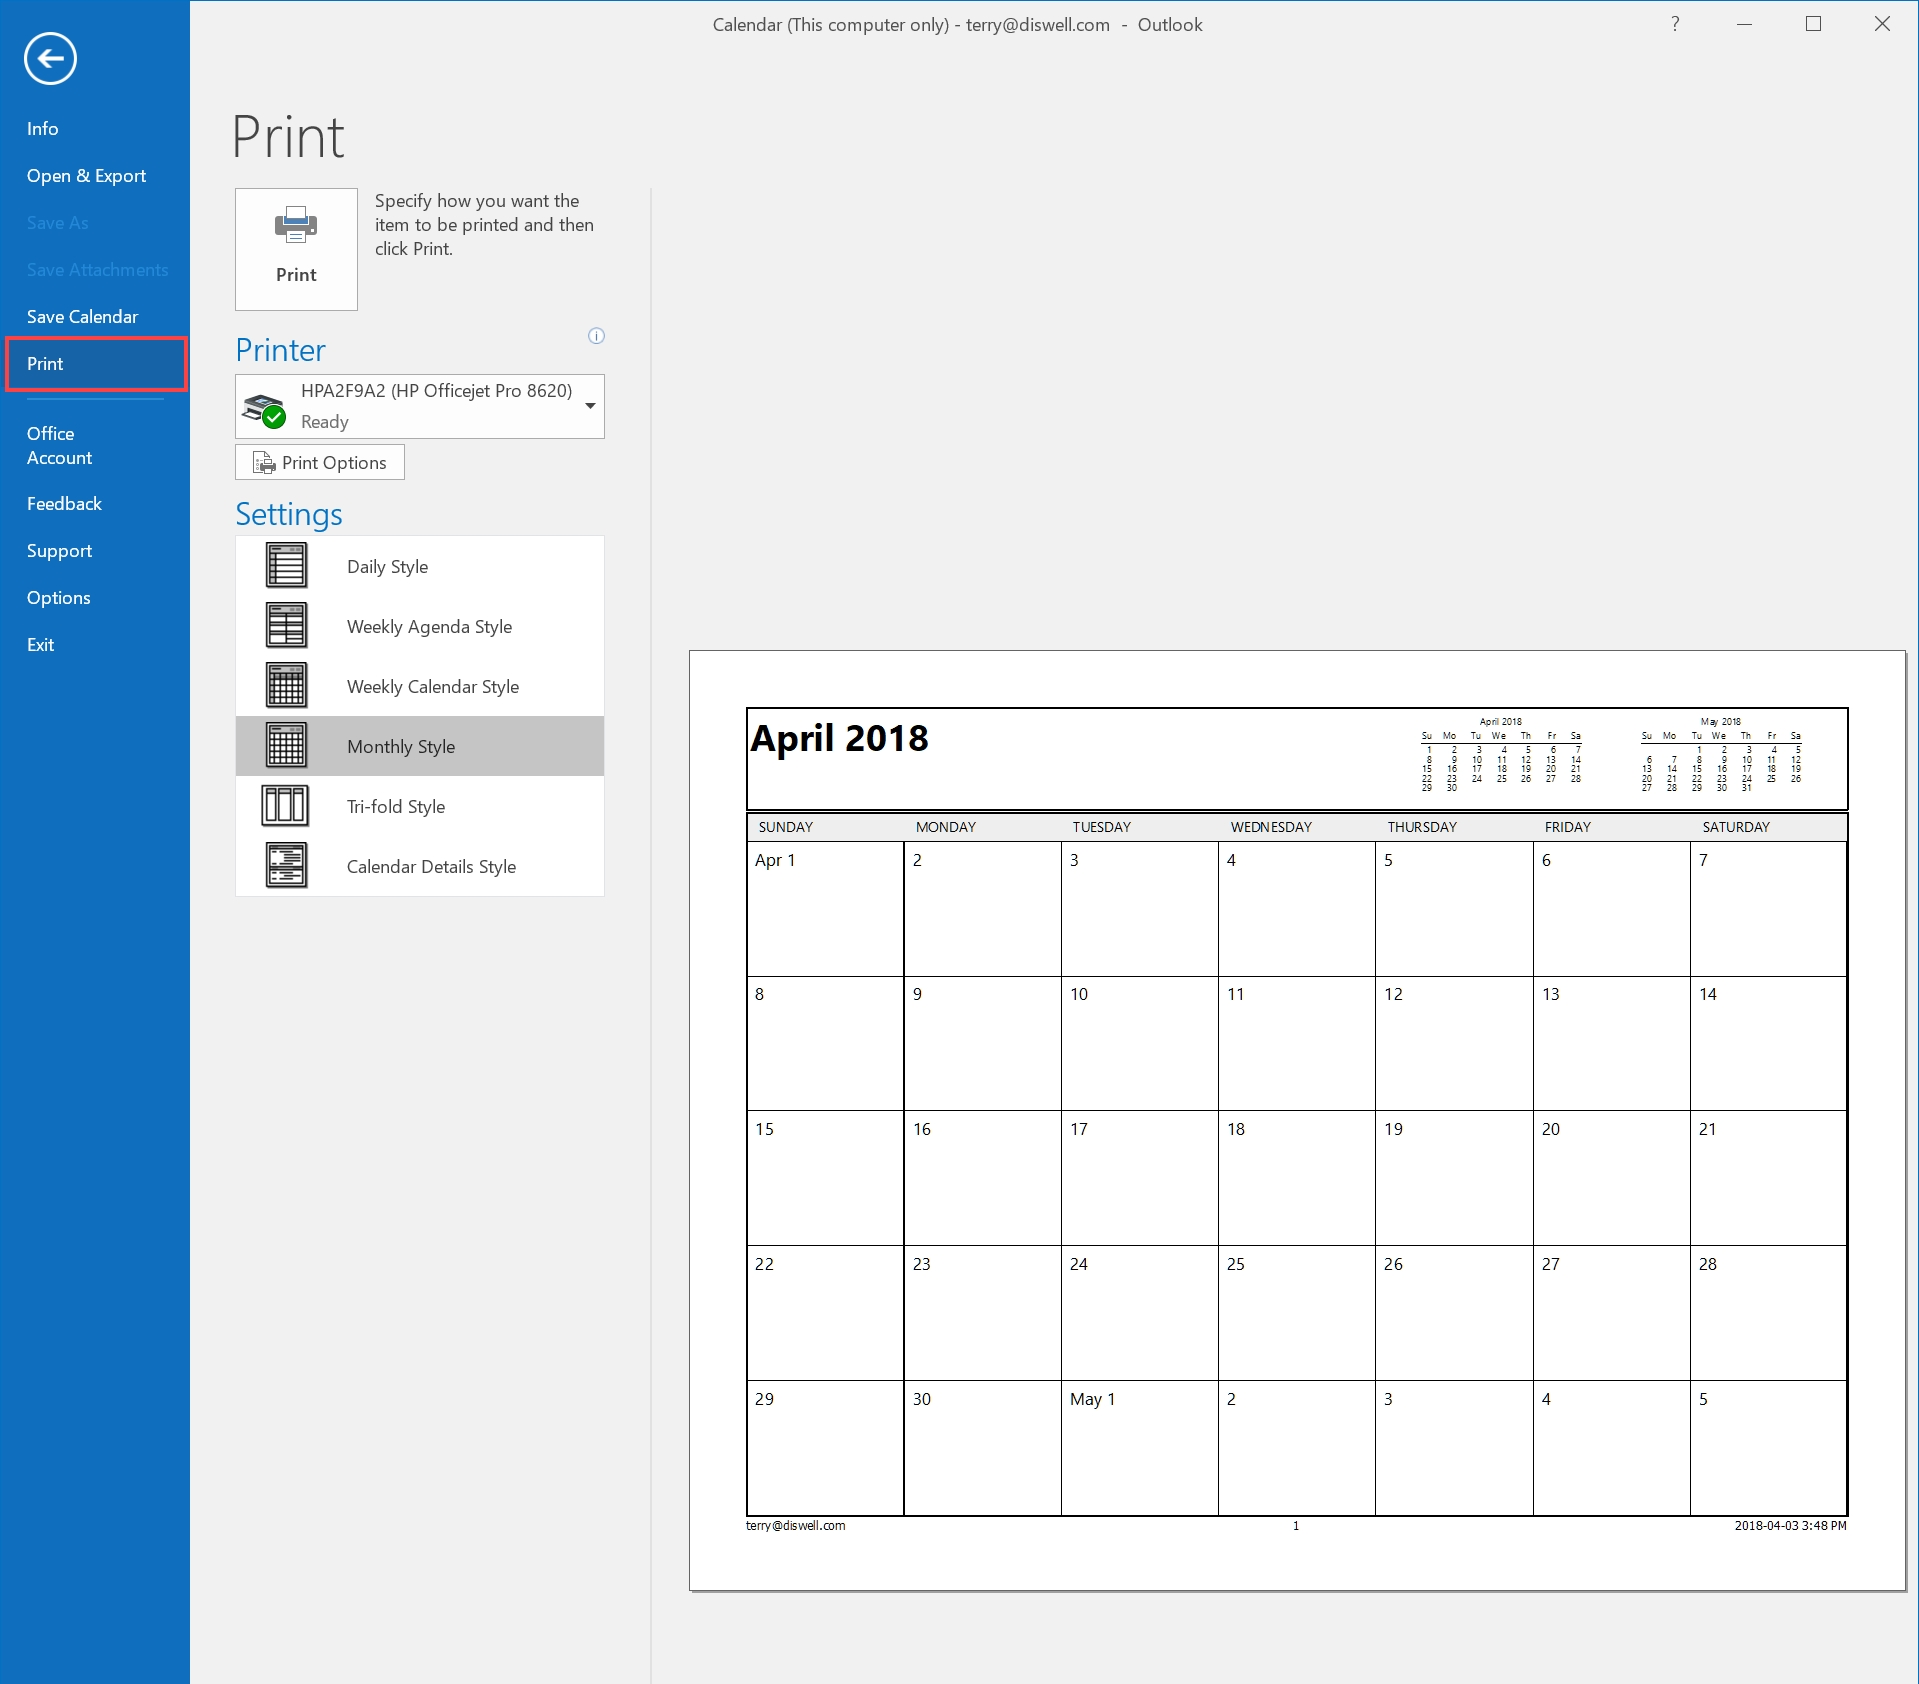 How To Email Or Print Your Calendar In Outlook 2016